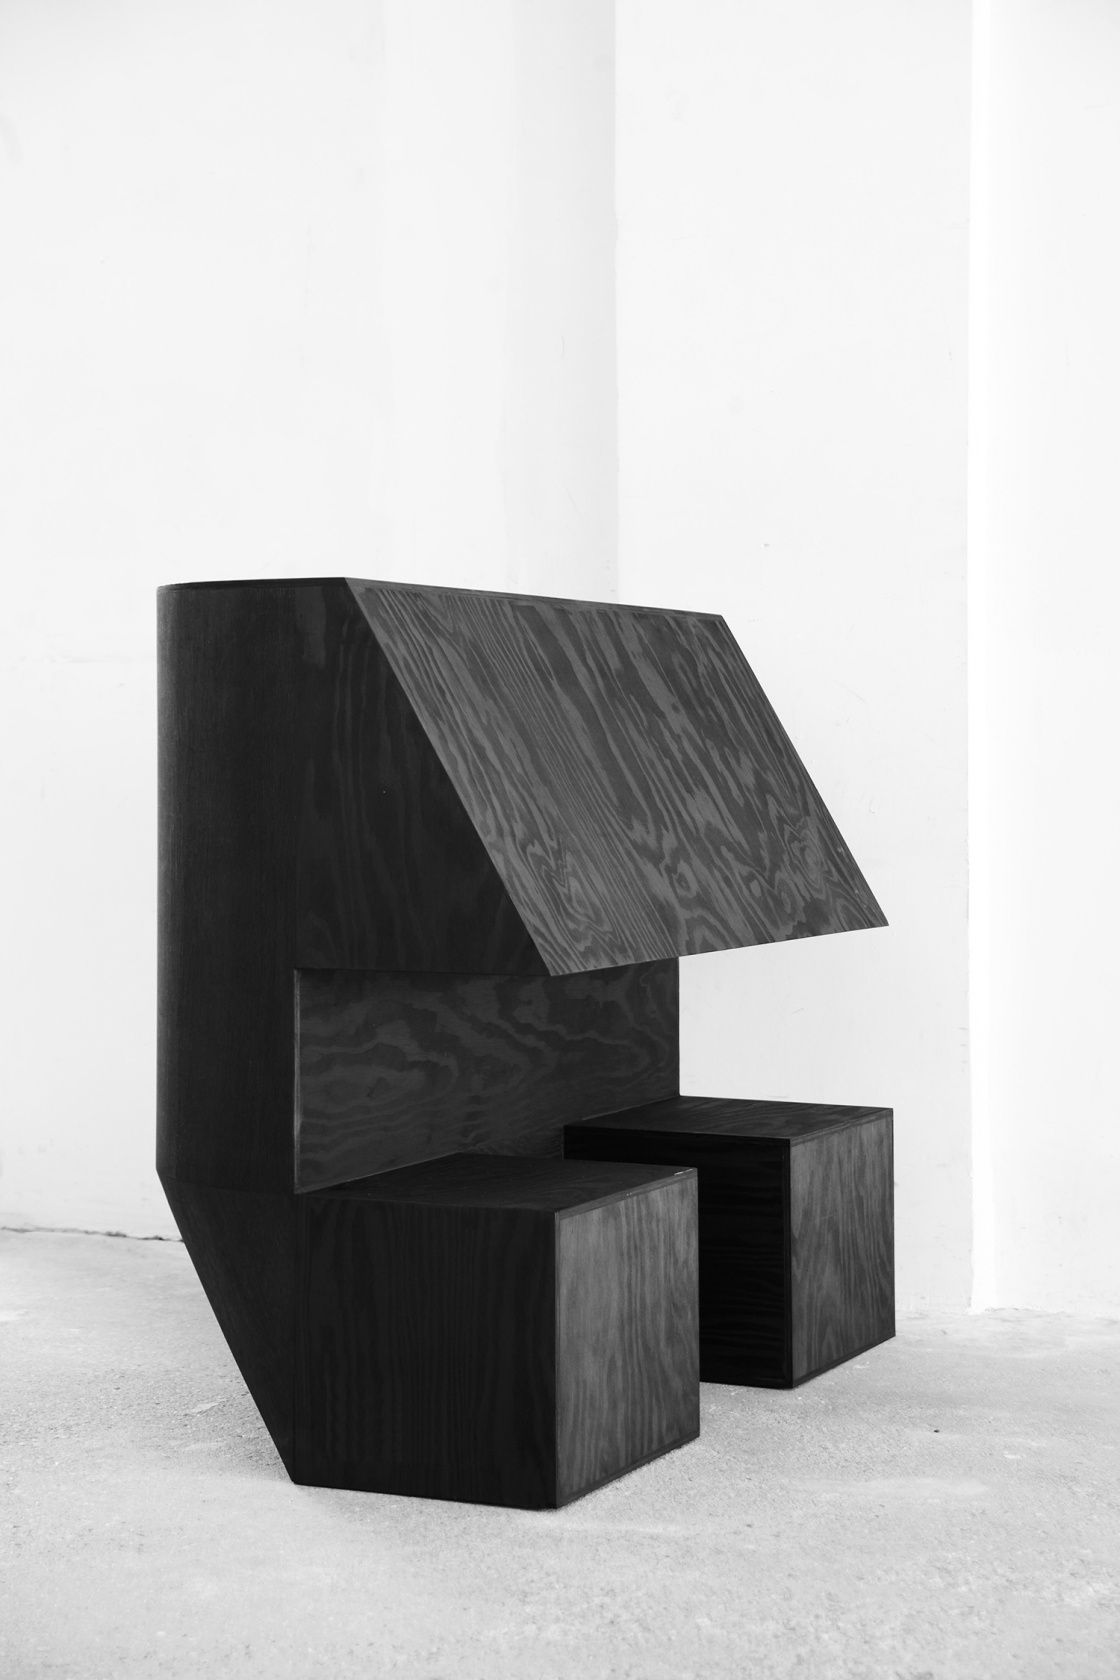 Rick Owens On View Dec 17, 2016   Apr 2, 2017 @ MOCA Pacific. Cozy FurnitureFurniture  DesignRick ...